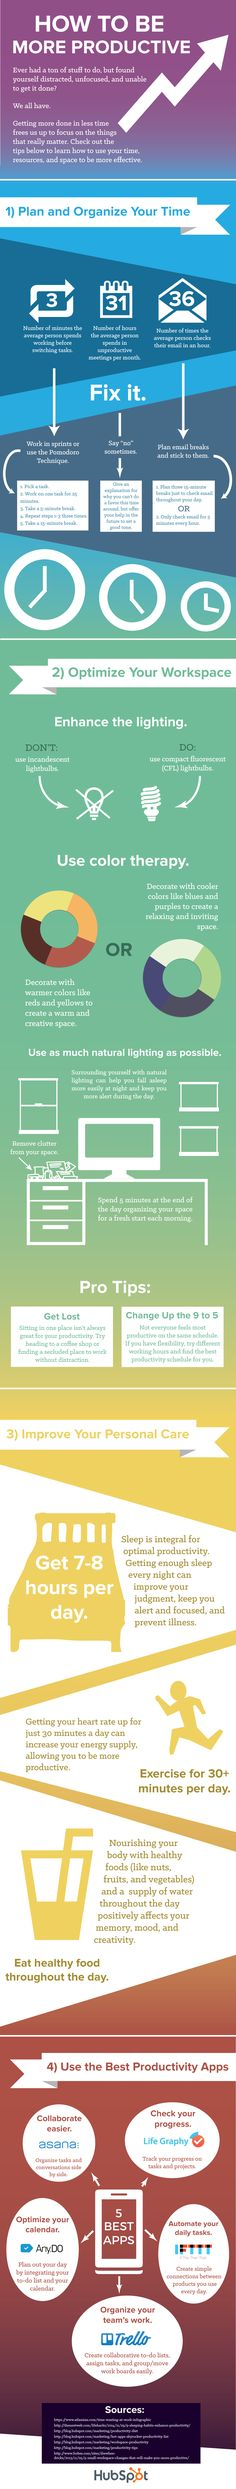 13 Productivity Tips